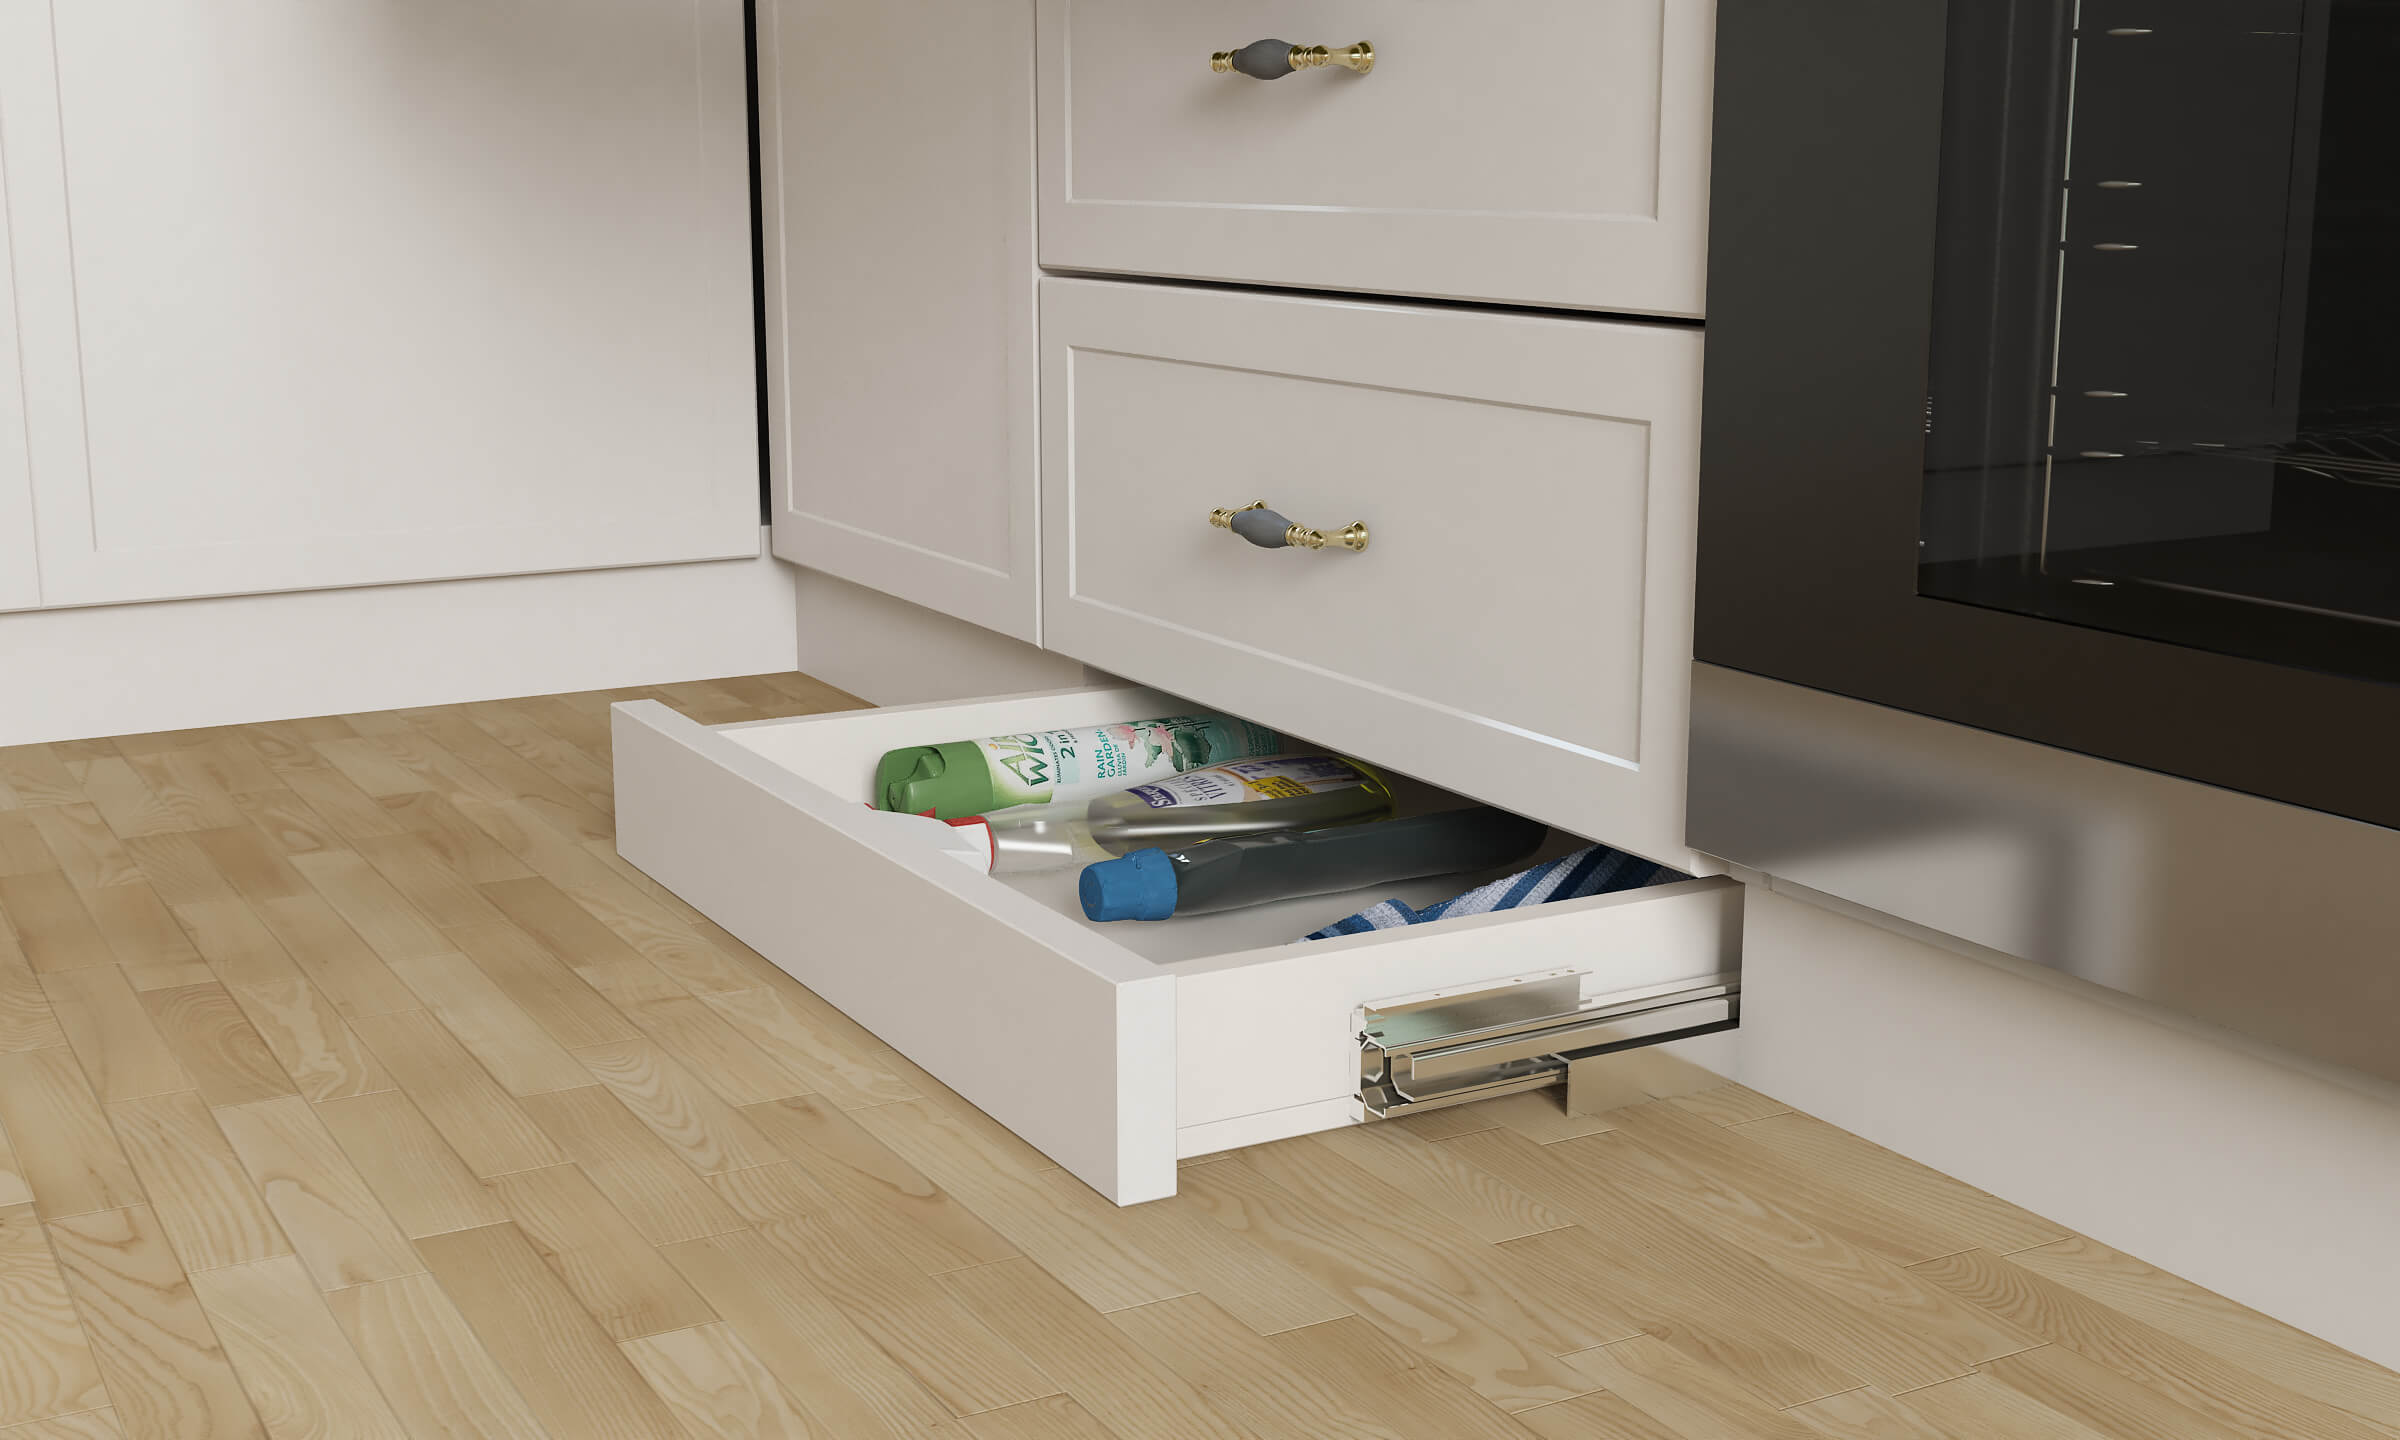 Maximize Storage Space in Your Modular Kitchen with Skirting Drawers in modern kitchen designs for small spaces